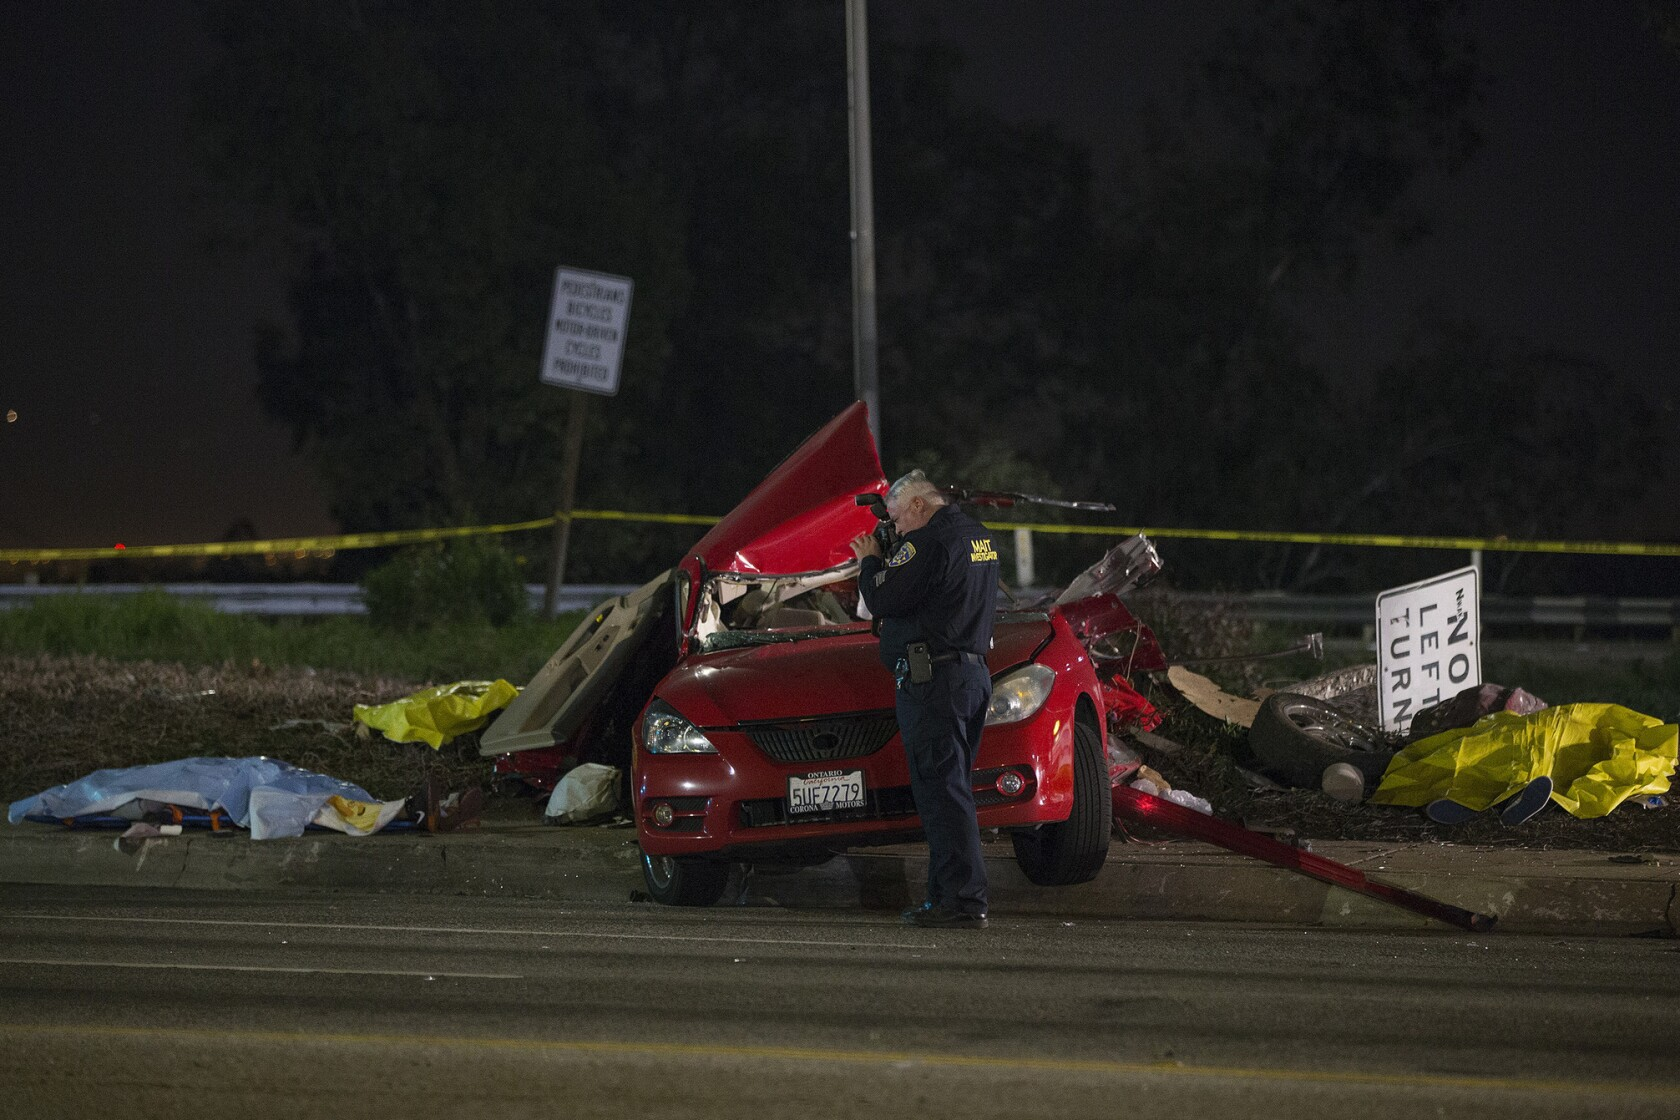 Five killed, including 7-year-old boy, after out-of-control